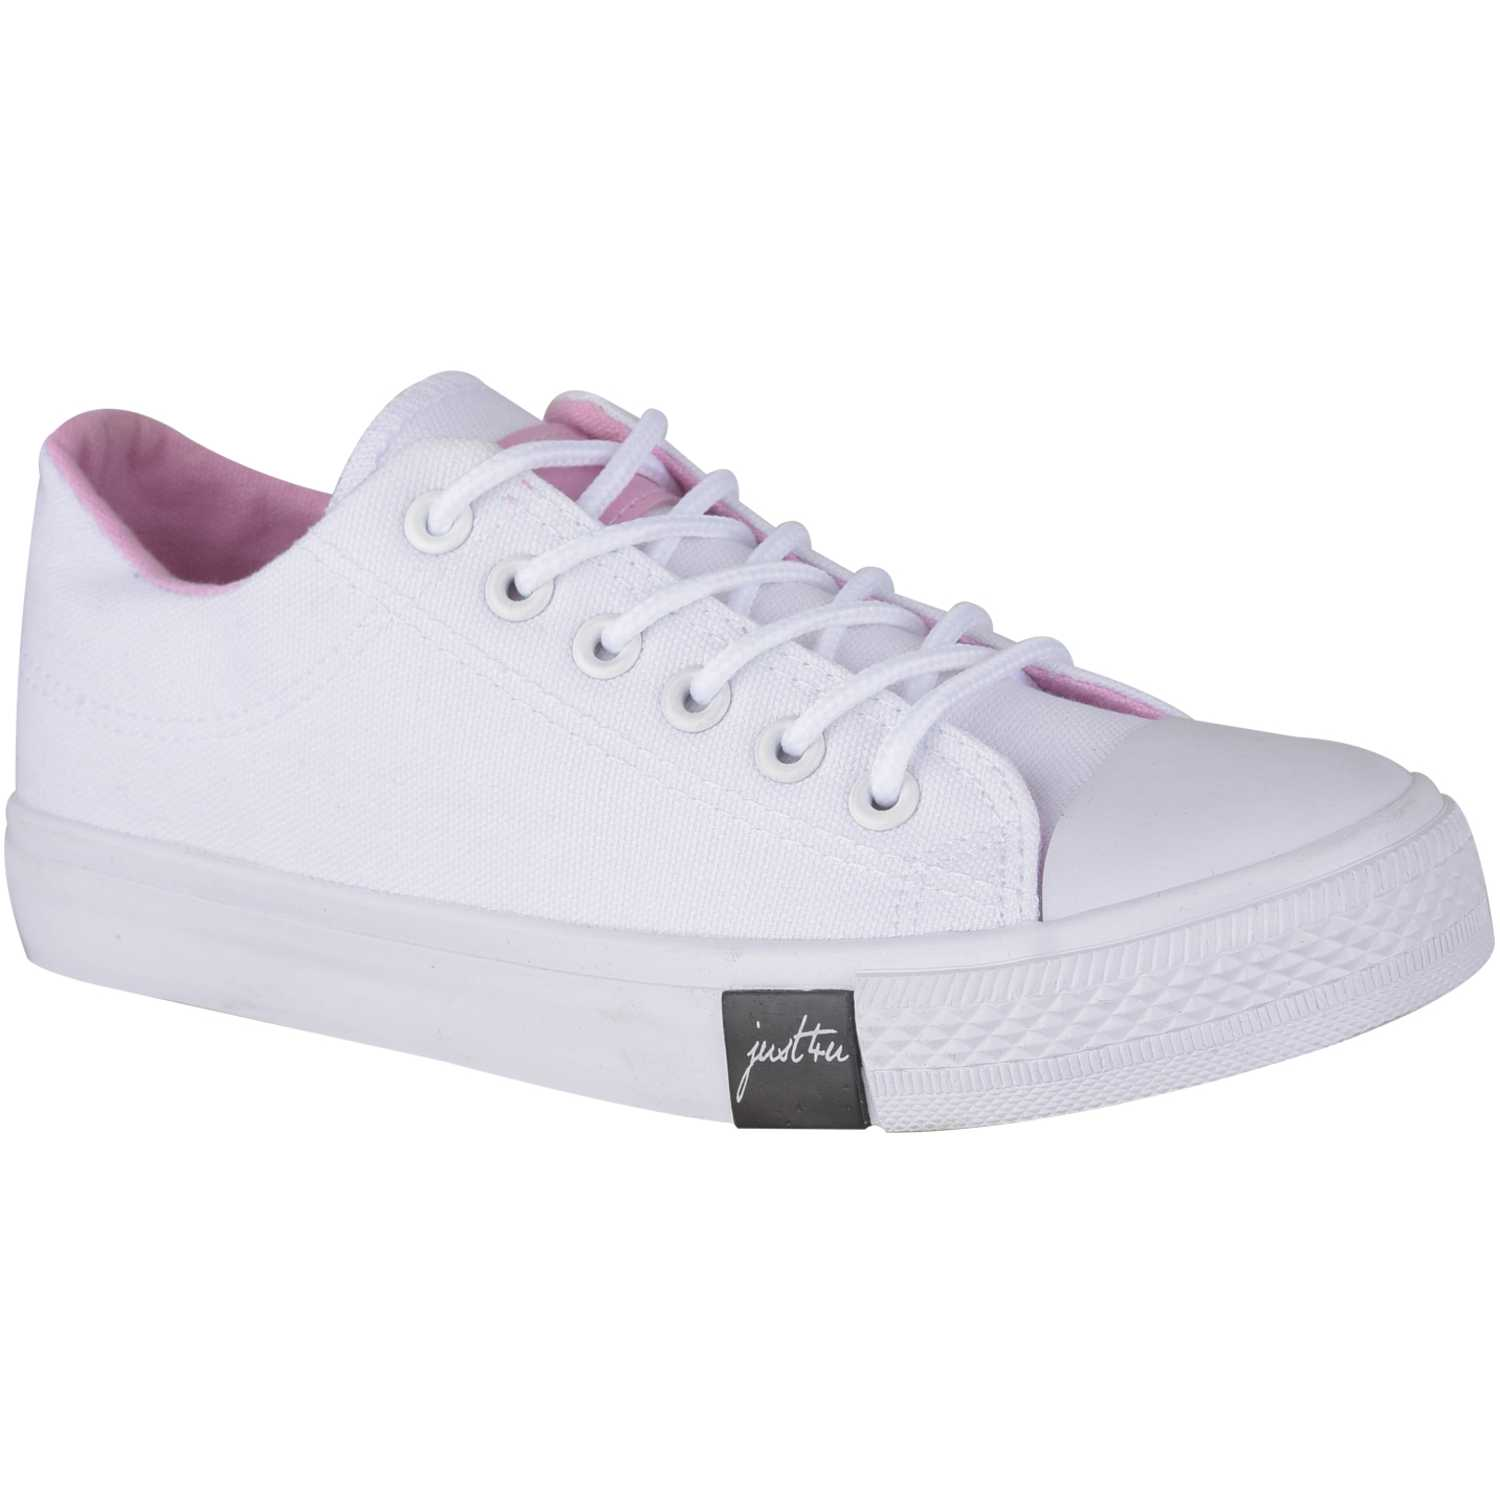 Platanitos zc 010 Blanco Zapatillas Fashion